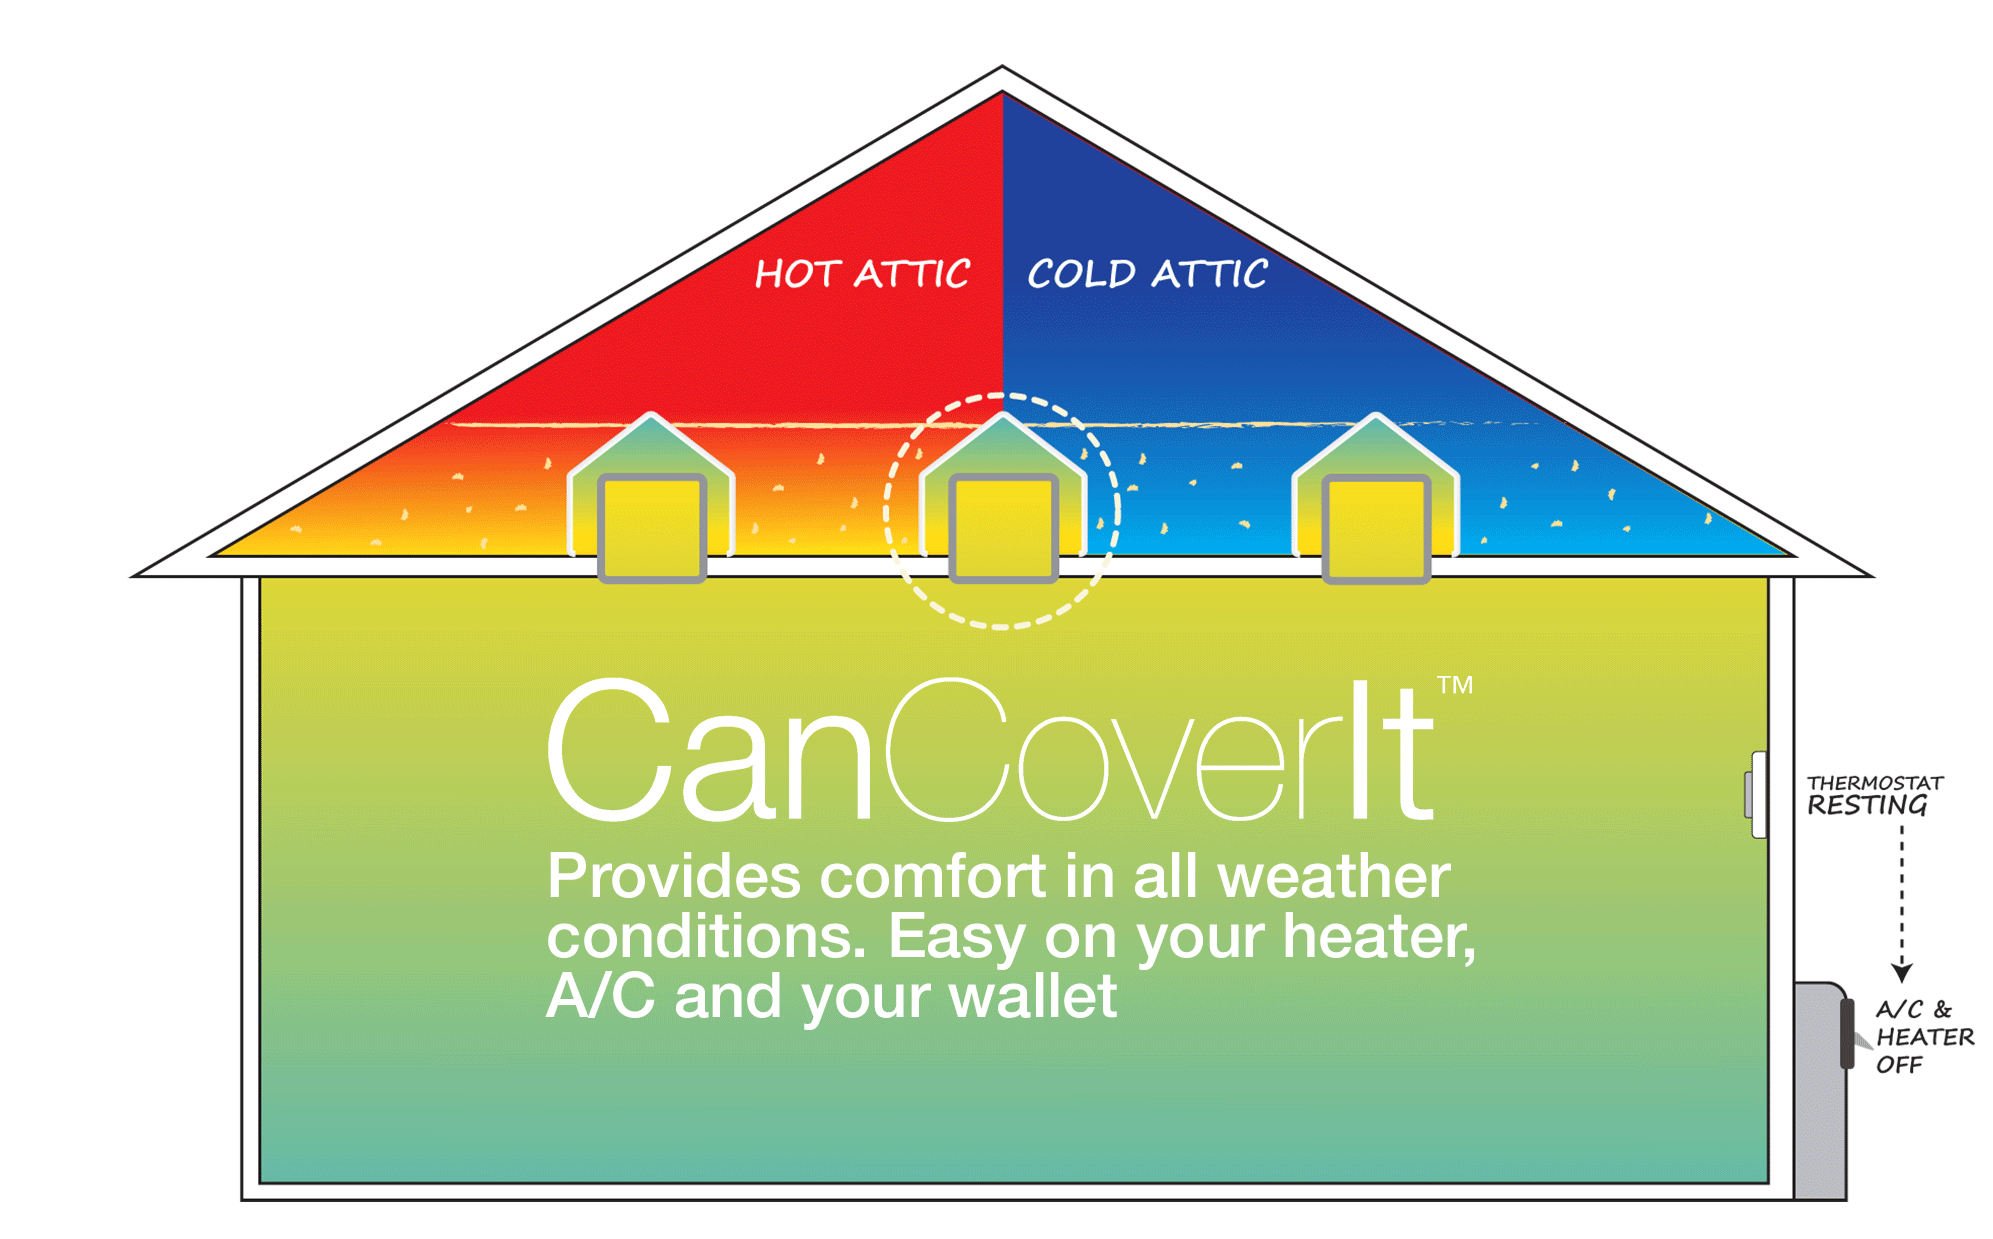 CanCoverIt provides comfort in all weaher conditions. Save money, increase comfort.